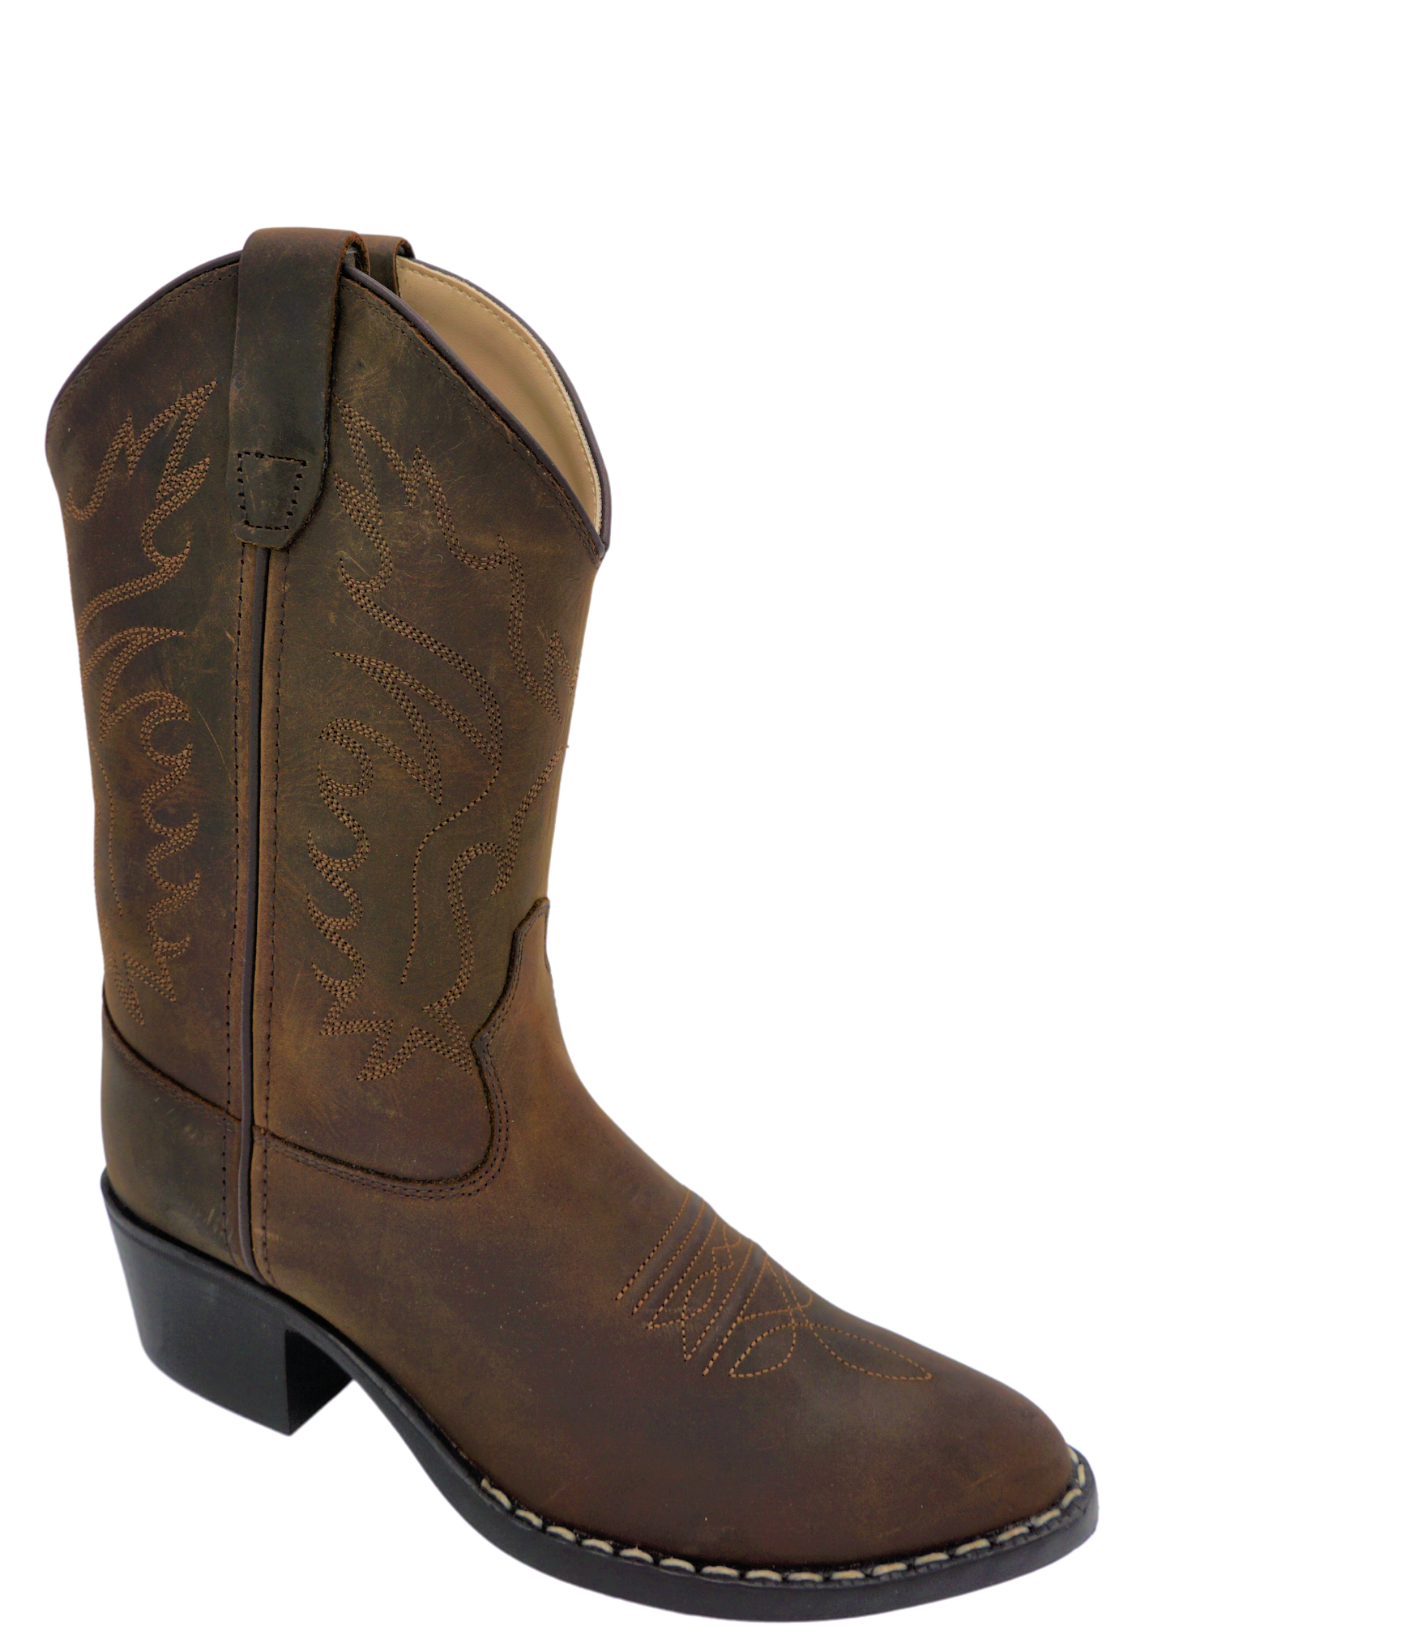 Bootstock Boots Brownie kids